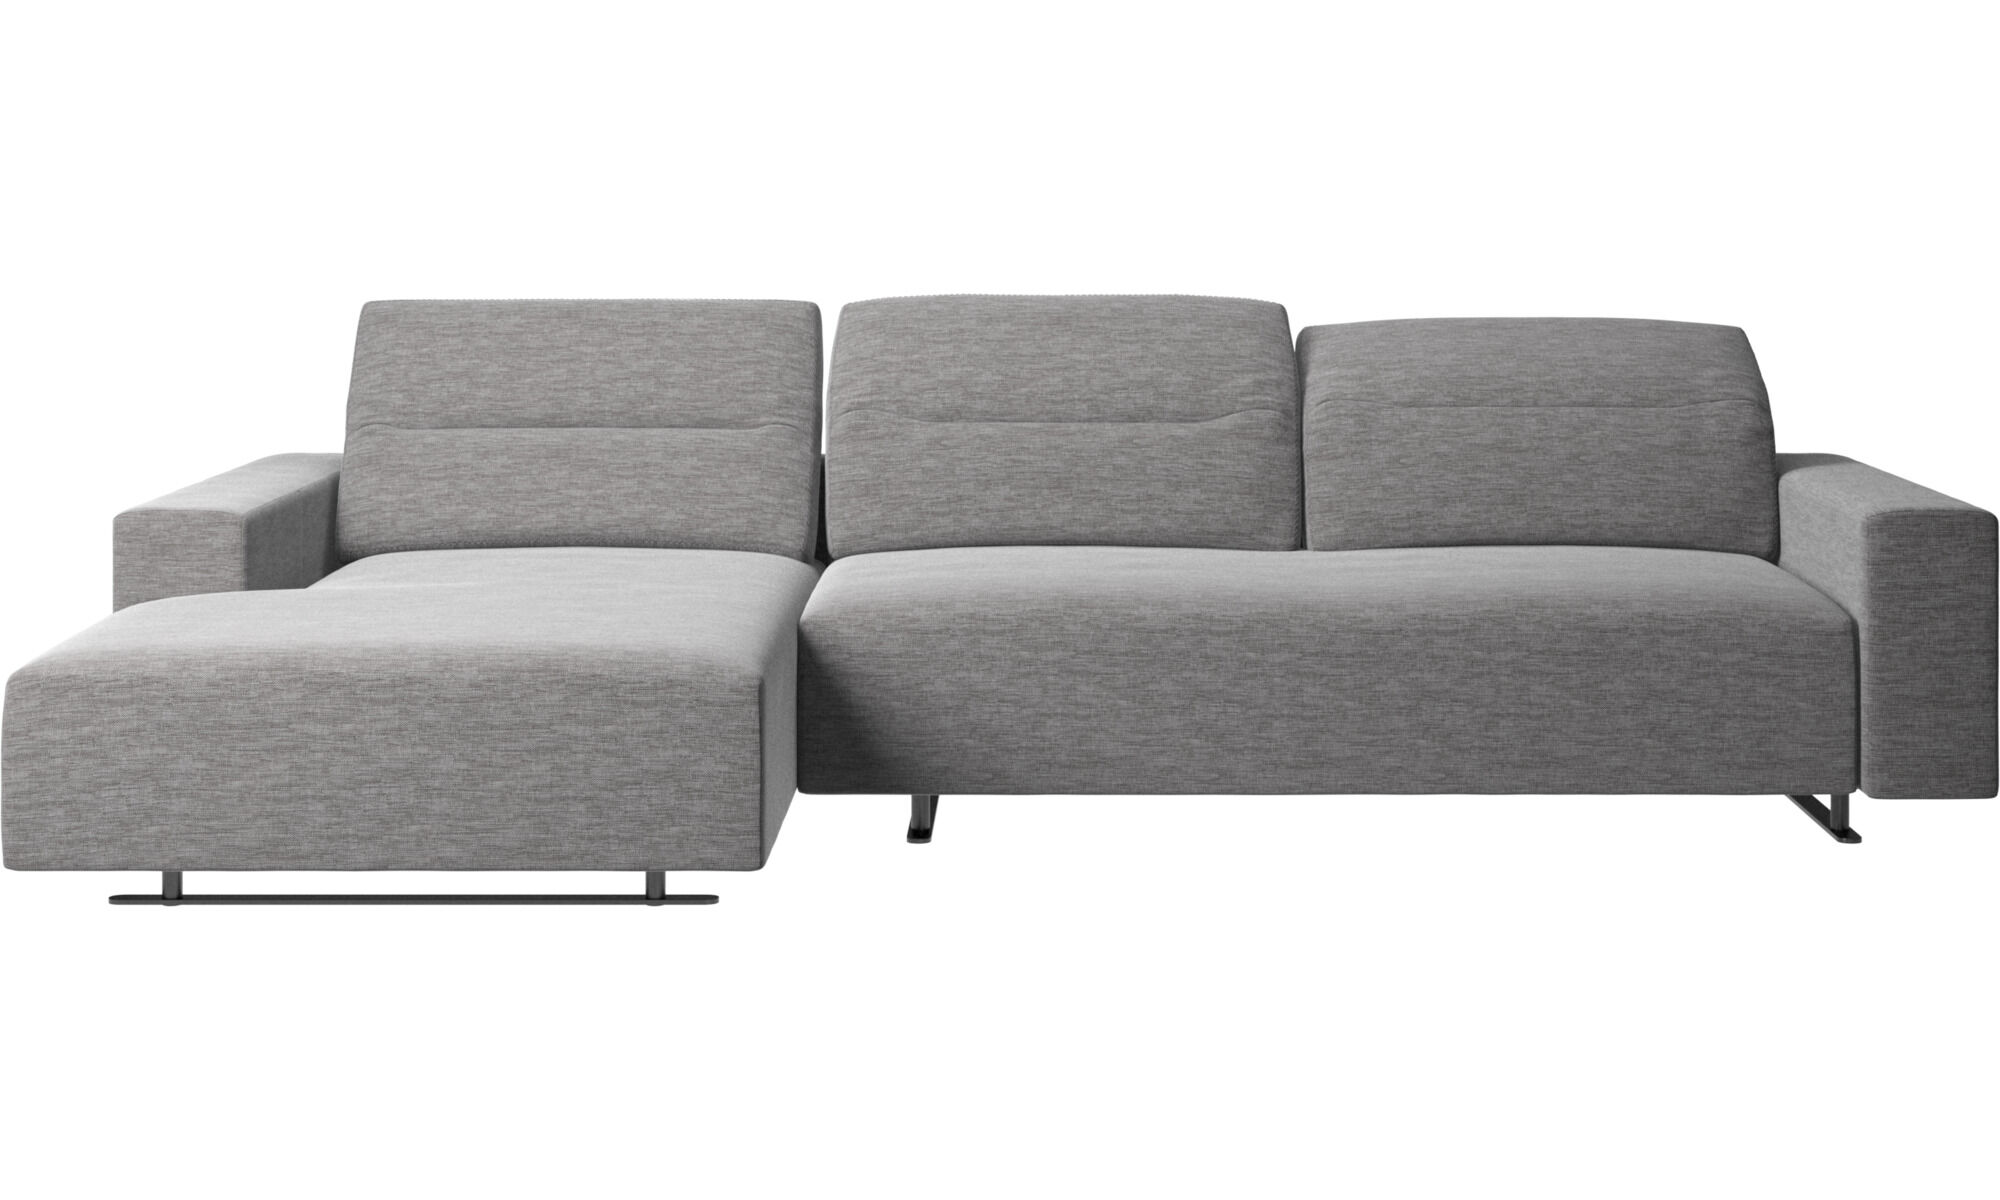 Chaiselongue Recamiere Modern Chaise Longue Sofas Contemporary Design From Boconcept